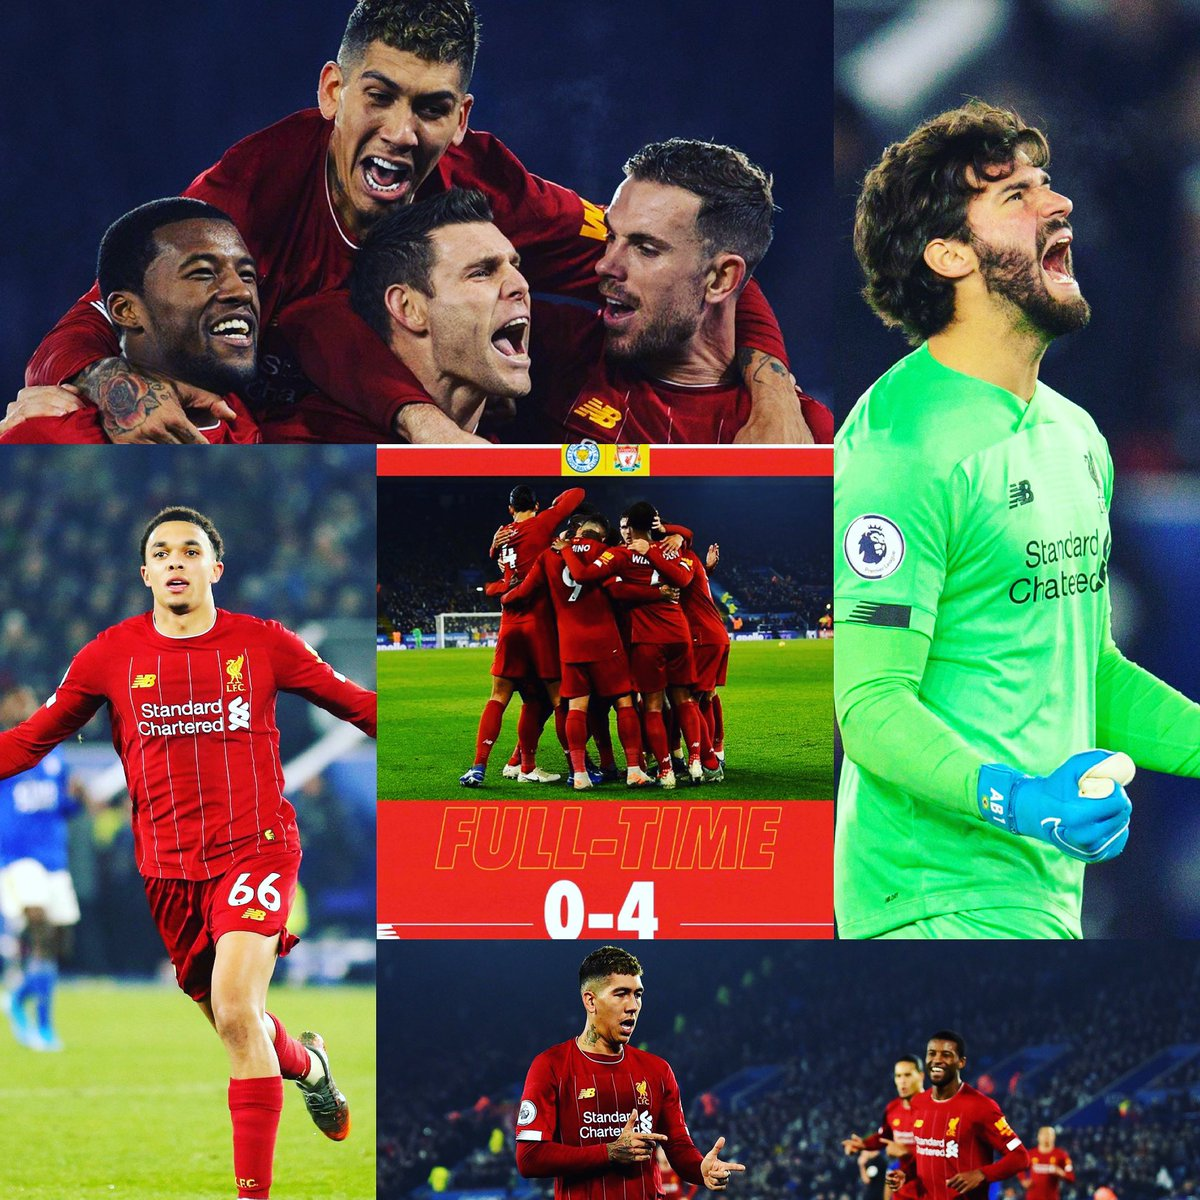 We just keep going. A Boxing Day clean sheet victory for @LFC.  52 points in 18 matches, and 13 points clear at the top of the table. Up the Reds! #leiliv